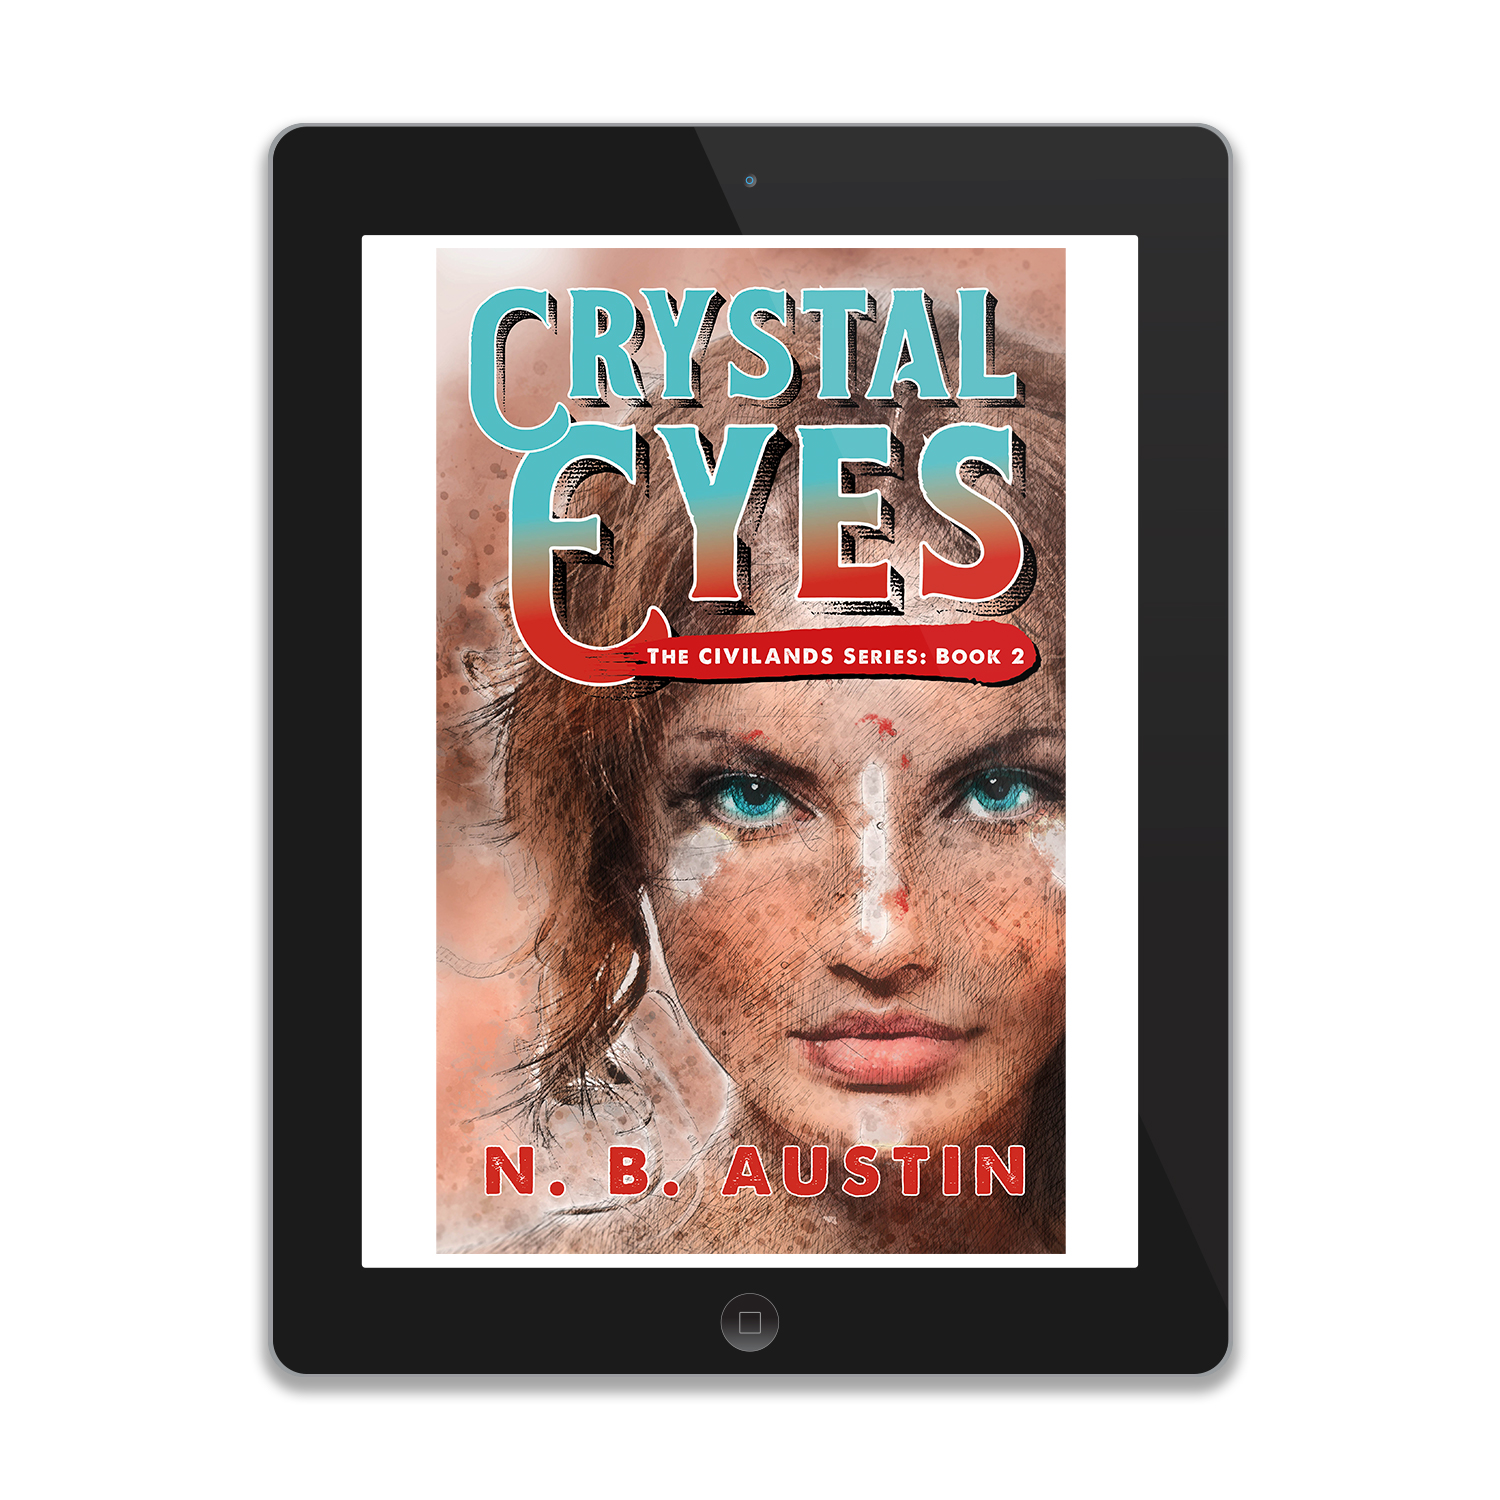 'Crystal Eyes' is book two in an alt-history mystical Western adventure series, by author NB Austin. The book cover & interior were designed by Mark Thomas, of coverness.com. To find out more about my book design services, please visit www.coverness.com.